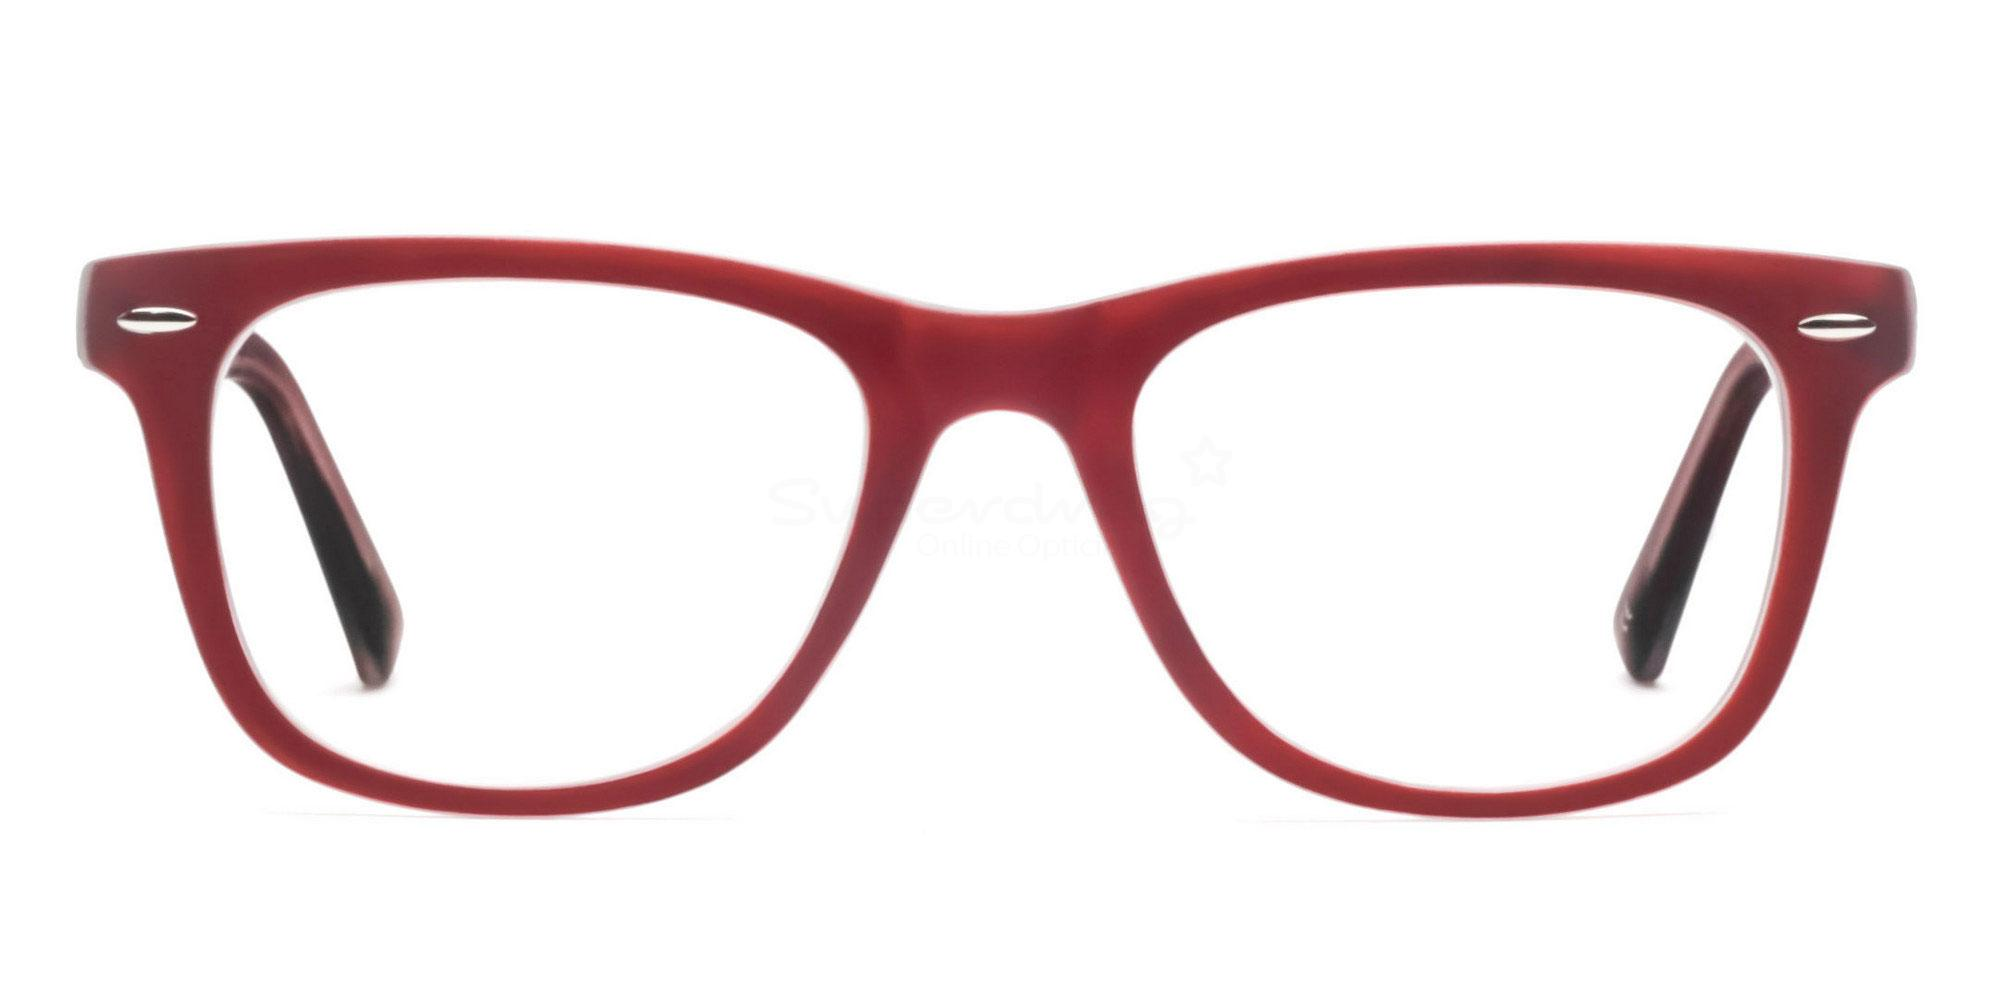 C13 8121 - Maroon on Transparent Glasses, Helium